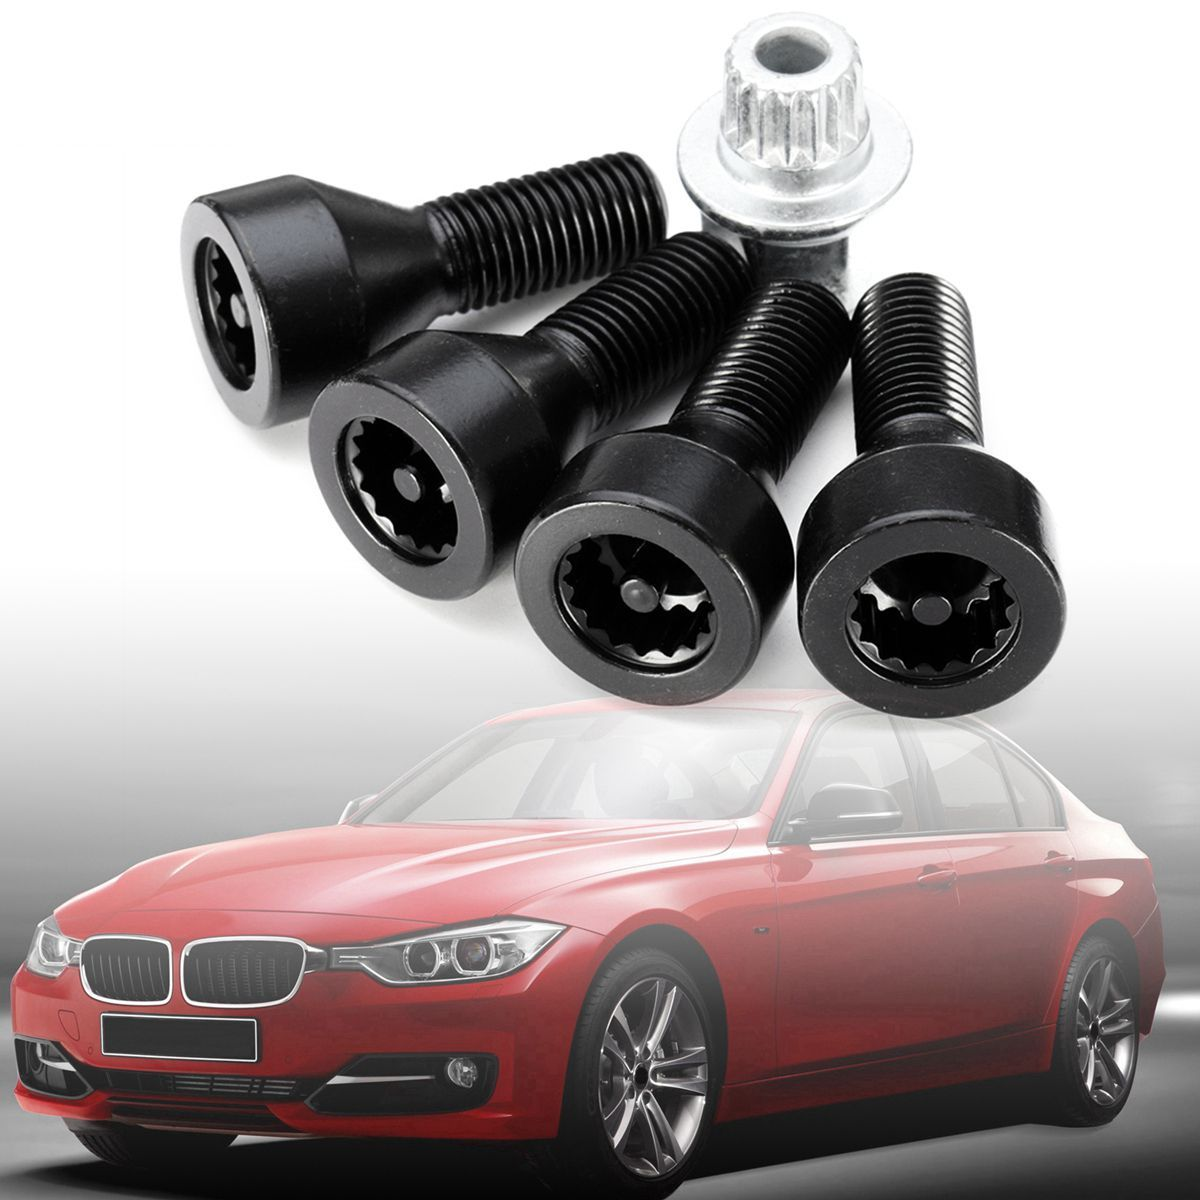 Wheel Lock Set Black Lug Bolts For BMW 128i 135i 318i 323i 325i 328i 330i 335i 525i 528i 530i 535i 540i 545i 550i 650i 735i 740i